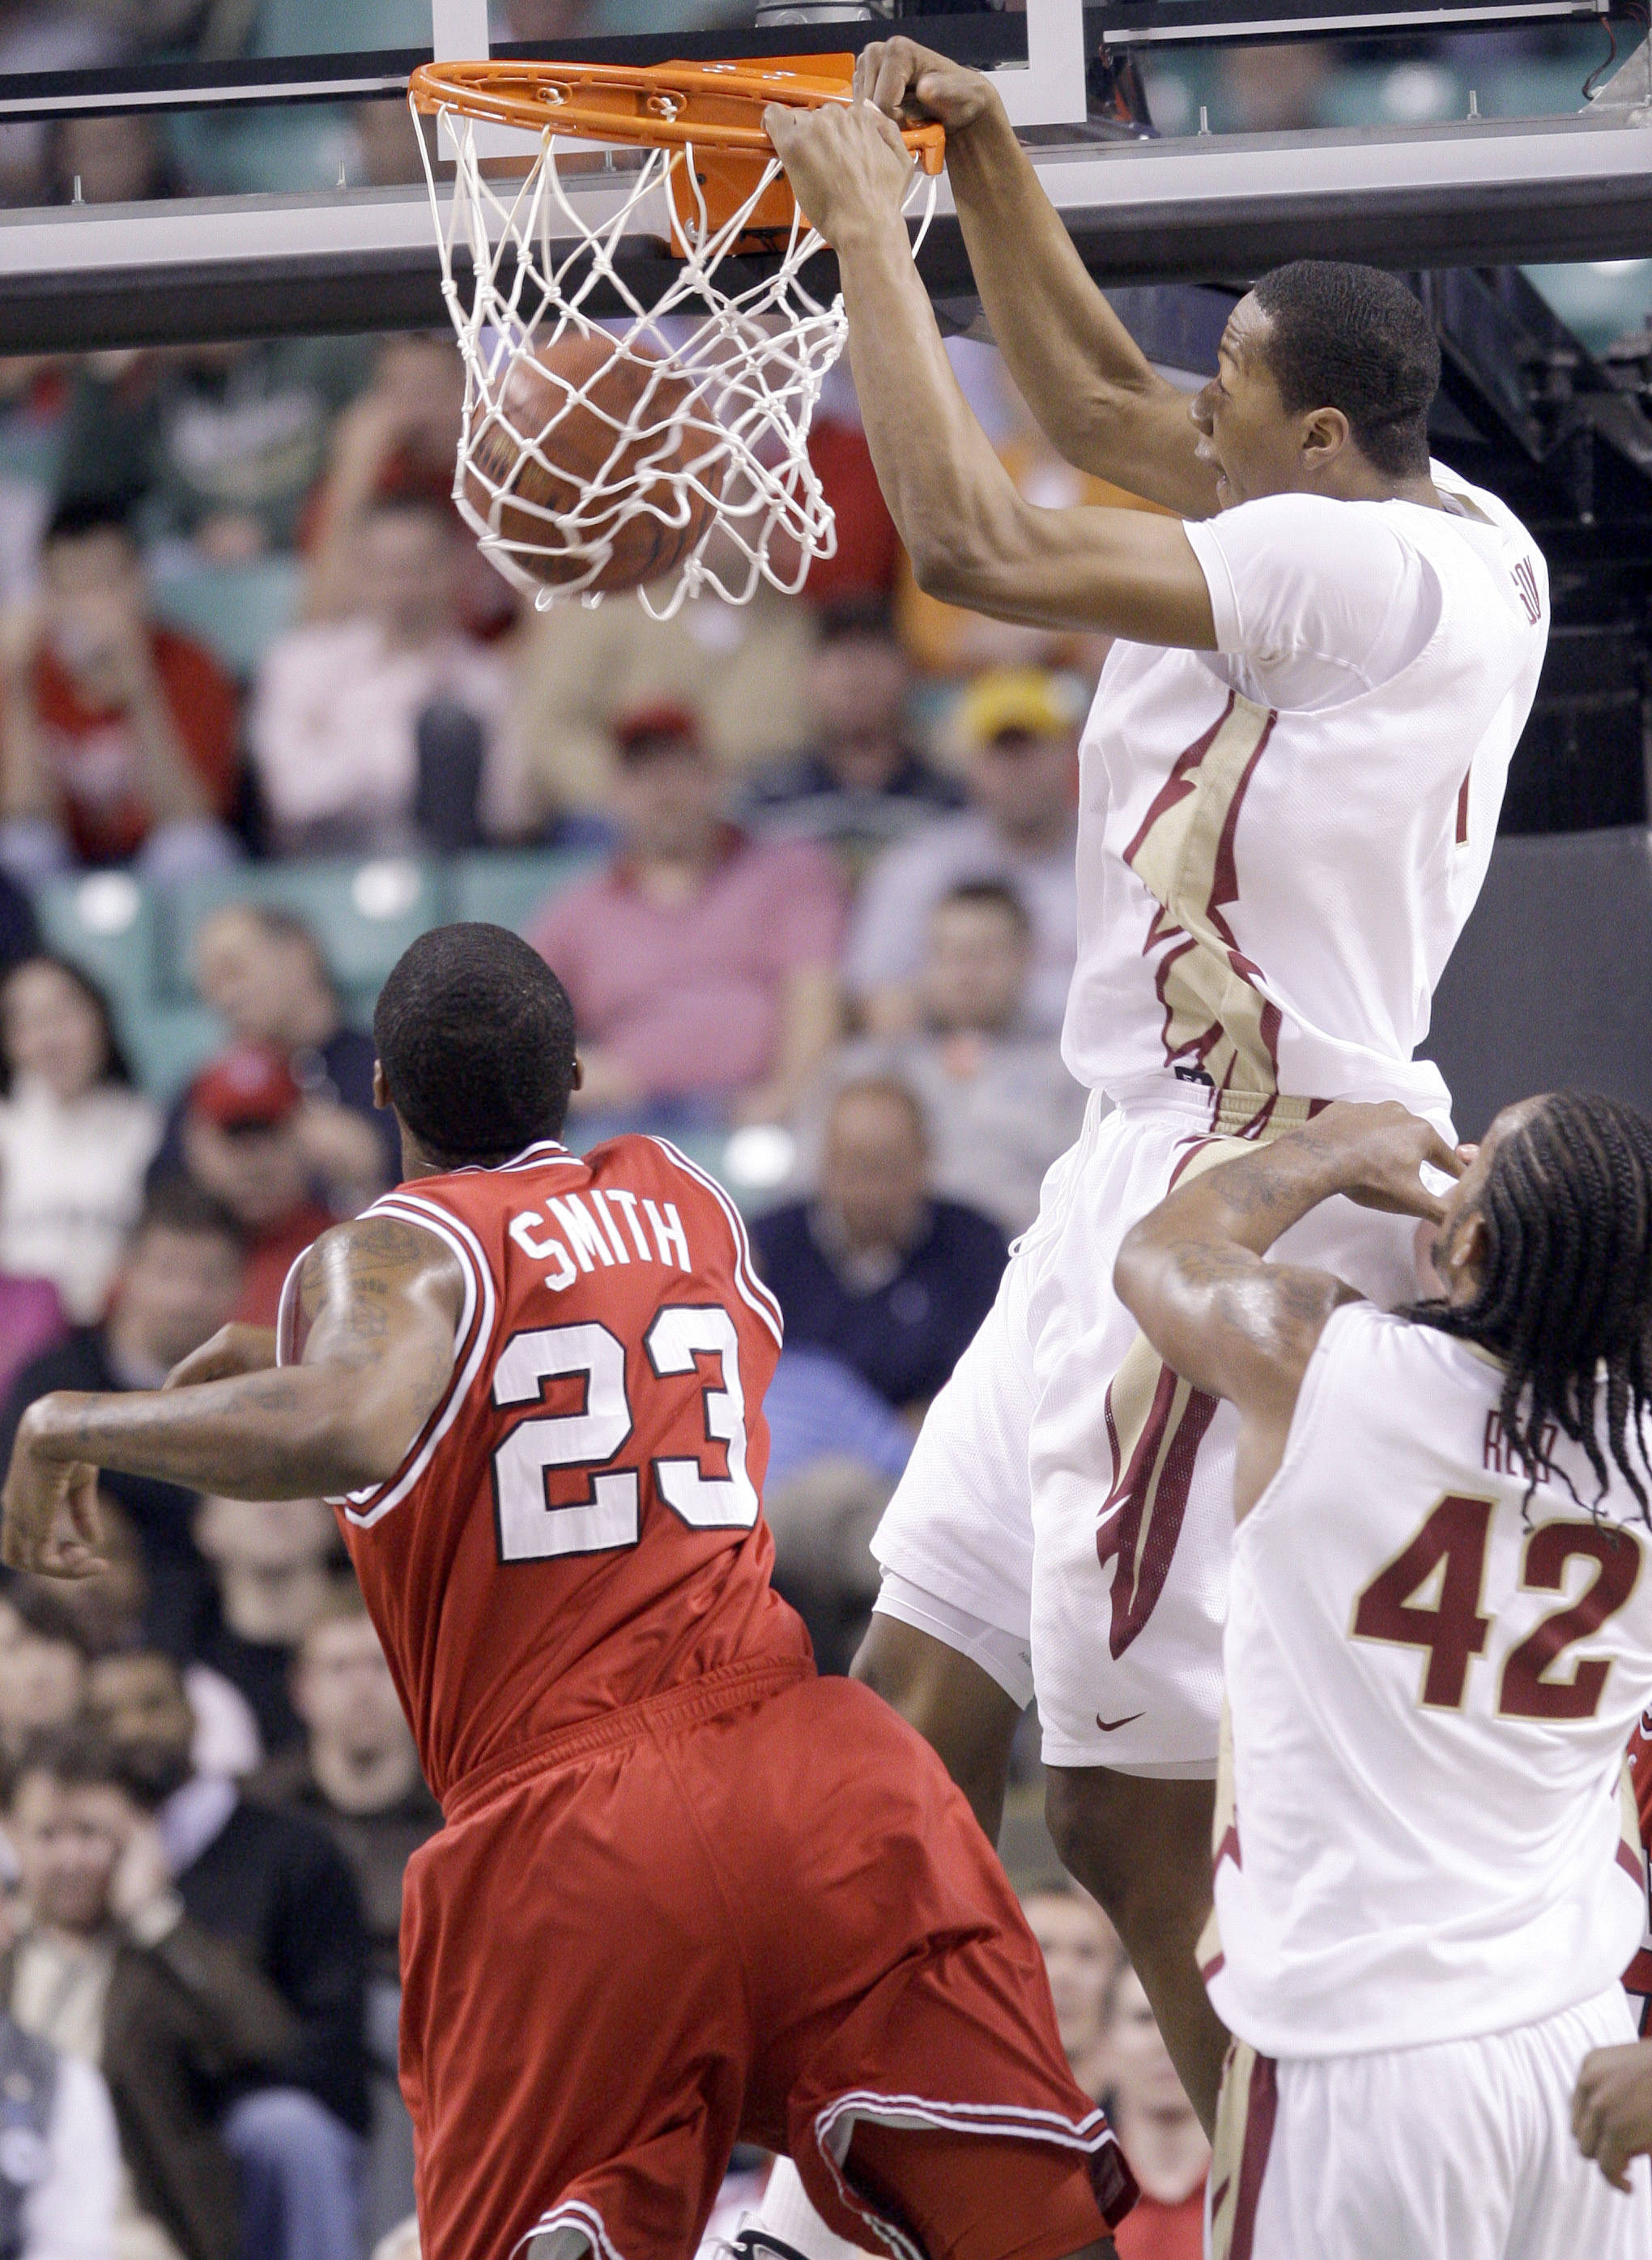 Florida State's Xavier Gibson (1) dunks the ball during the first half of an NCAA college basketball game against North Carolina State in the Atlantic Coast Conference tournament in Greensboro, N.C., Friday, March 12, 2010. (AP Photo/Chuck Burton)